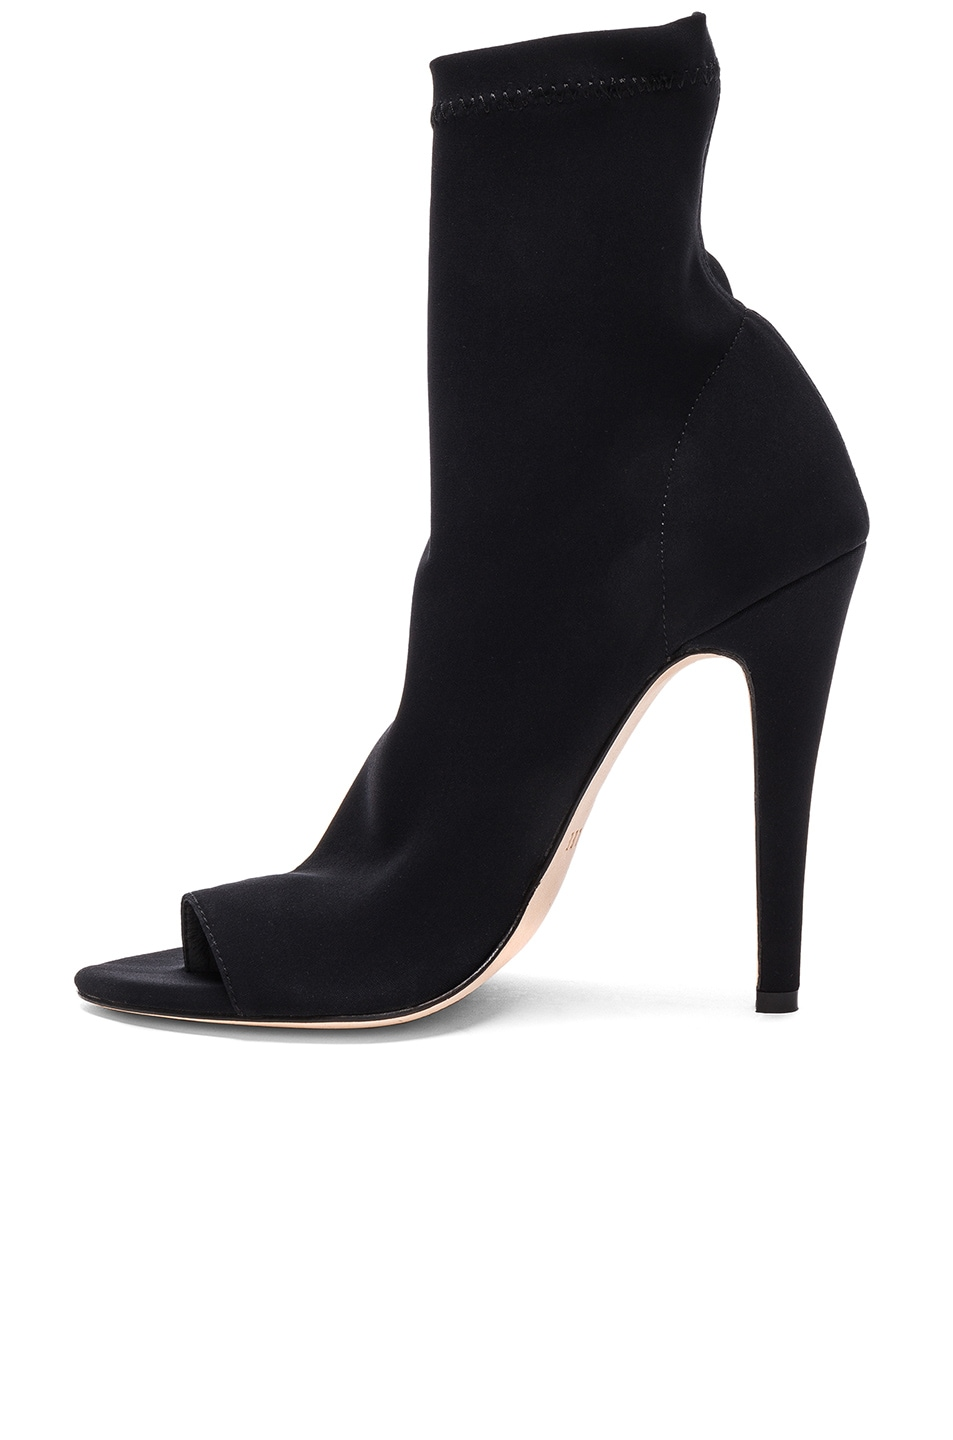 Image 5 of Dion Lee Glove Ankle Booties in Black